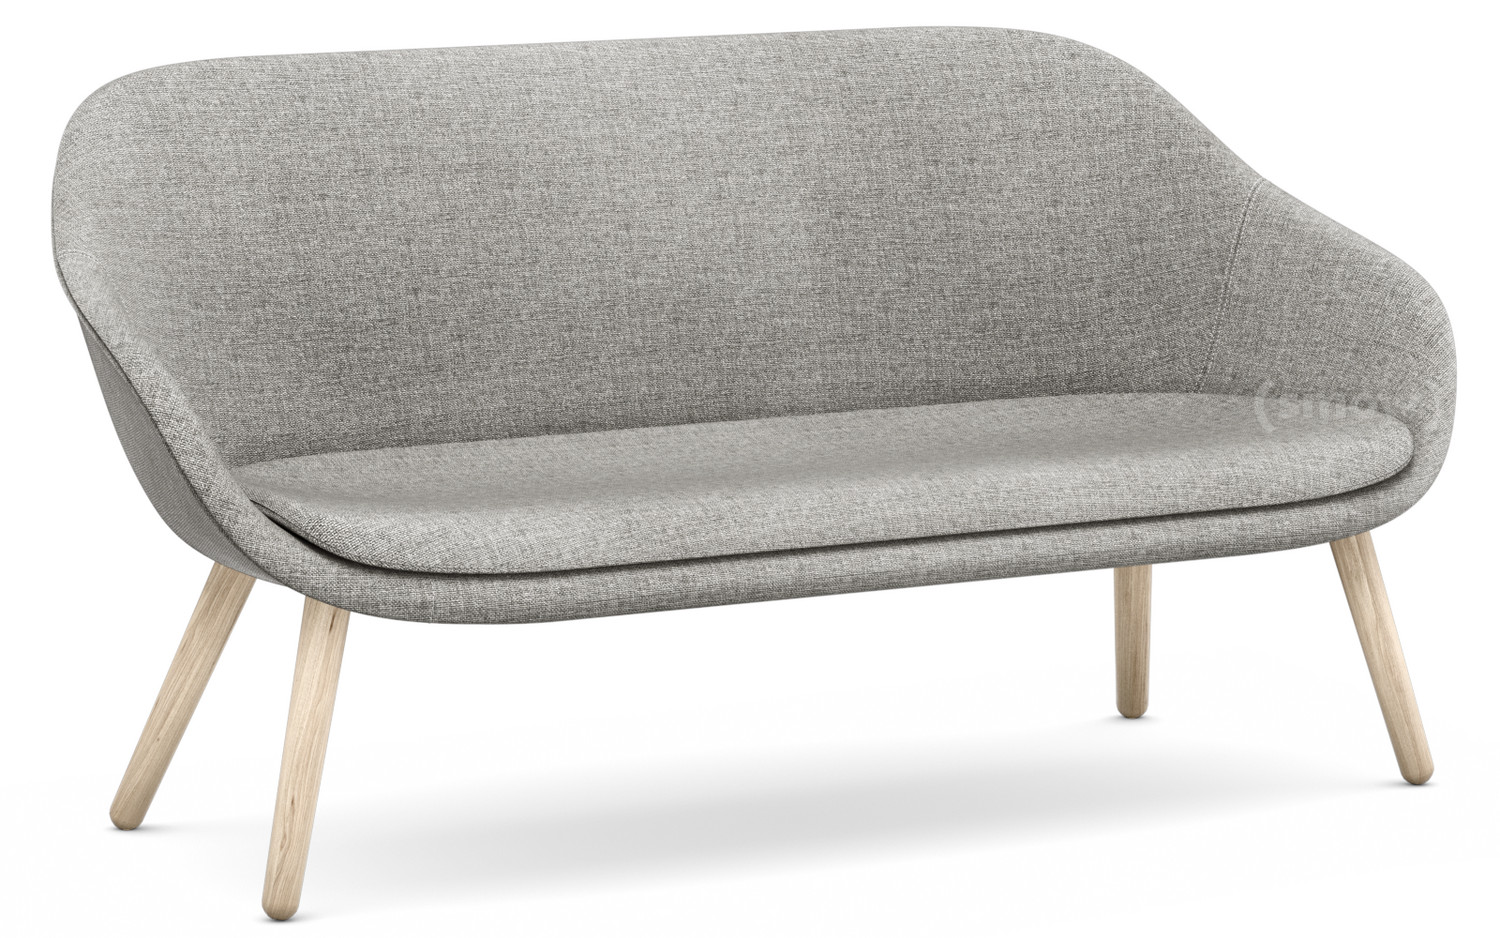 Lounge Sofa Grau Hay About A Lounge Sofa For Comwell Hallingdal 116 Warm Grey Soap Treated Oak